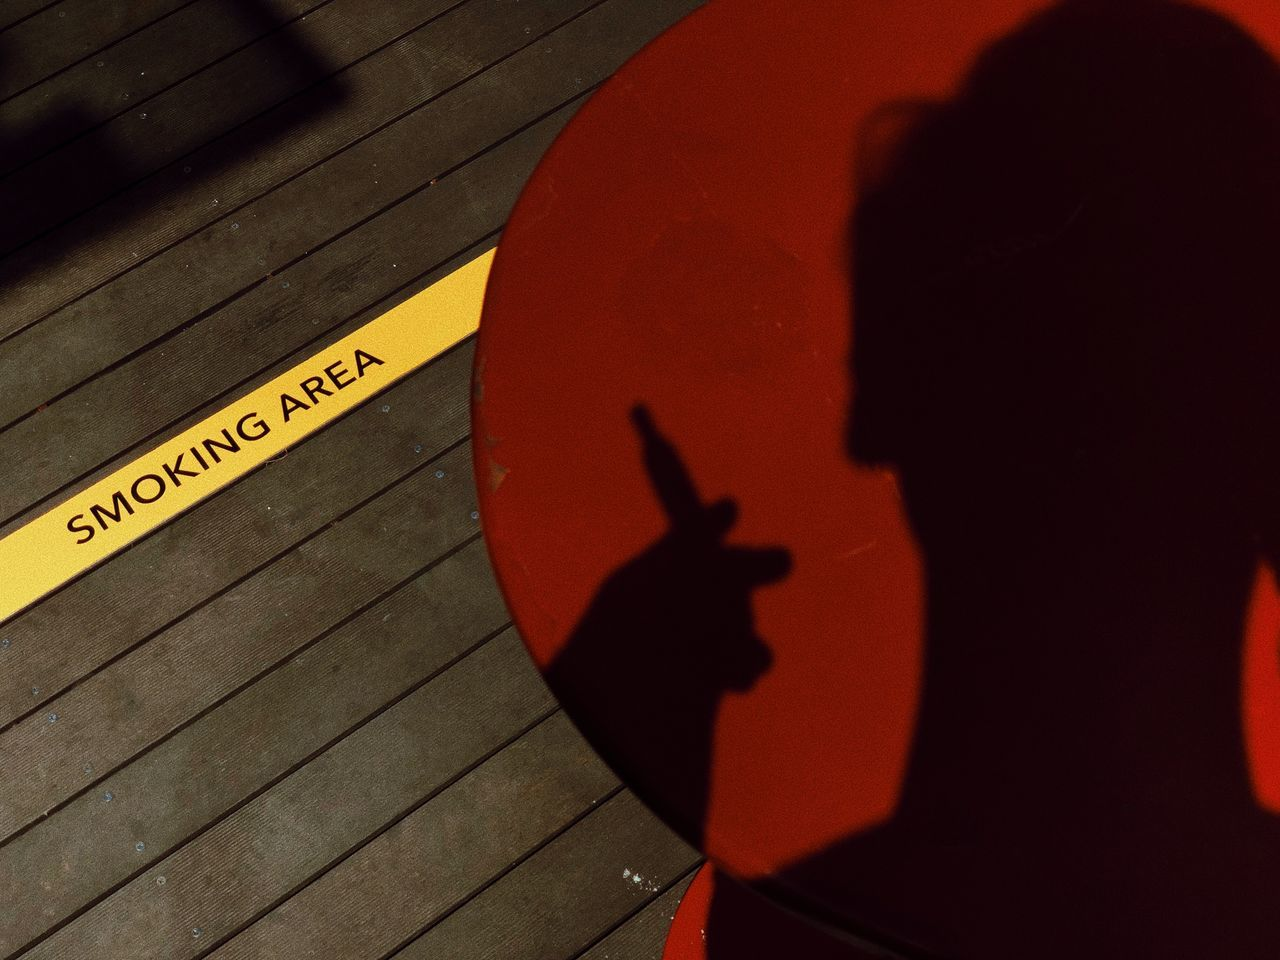 text, communication, western script, sign, high angle view, shadow, indoors, close-up, real people, one person, day, red, capital letter, wood - material, information, table, orange color, yellow